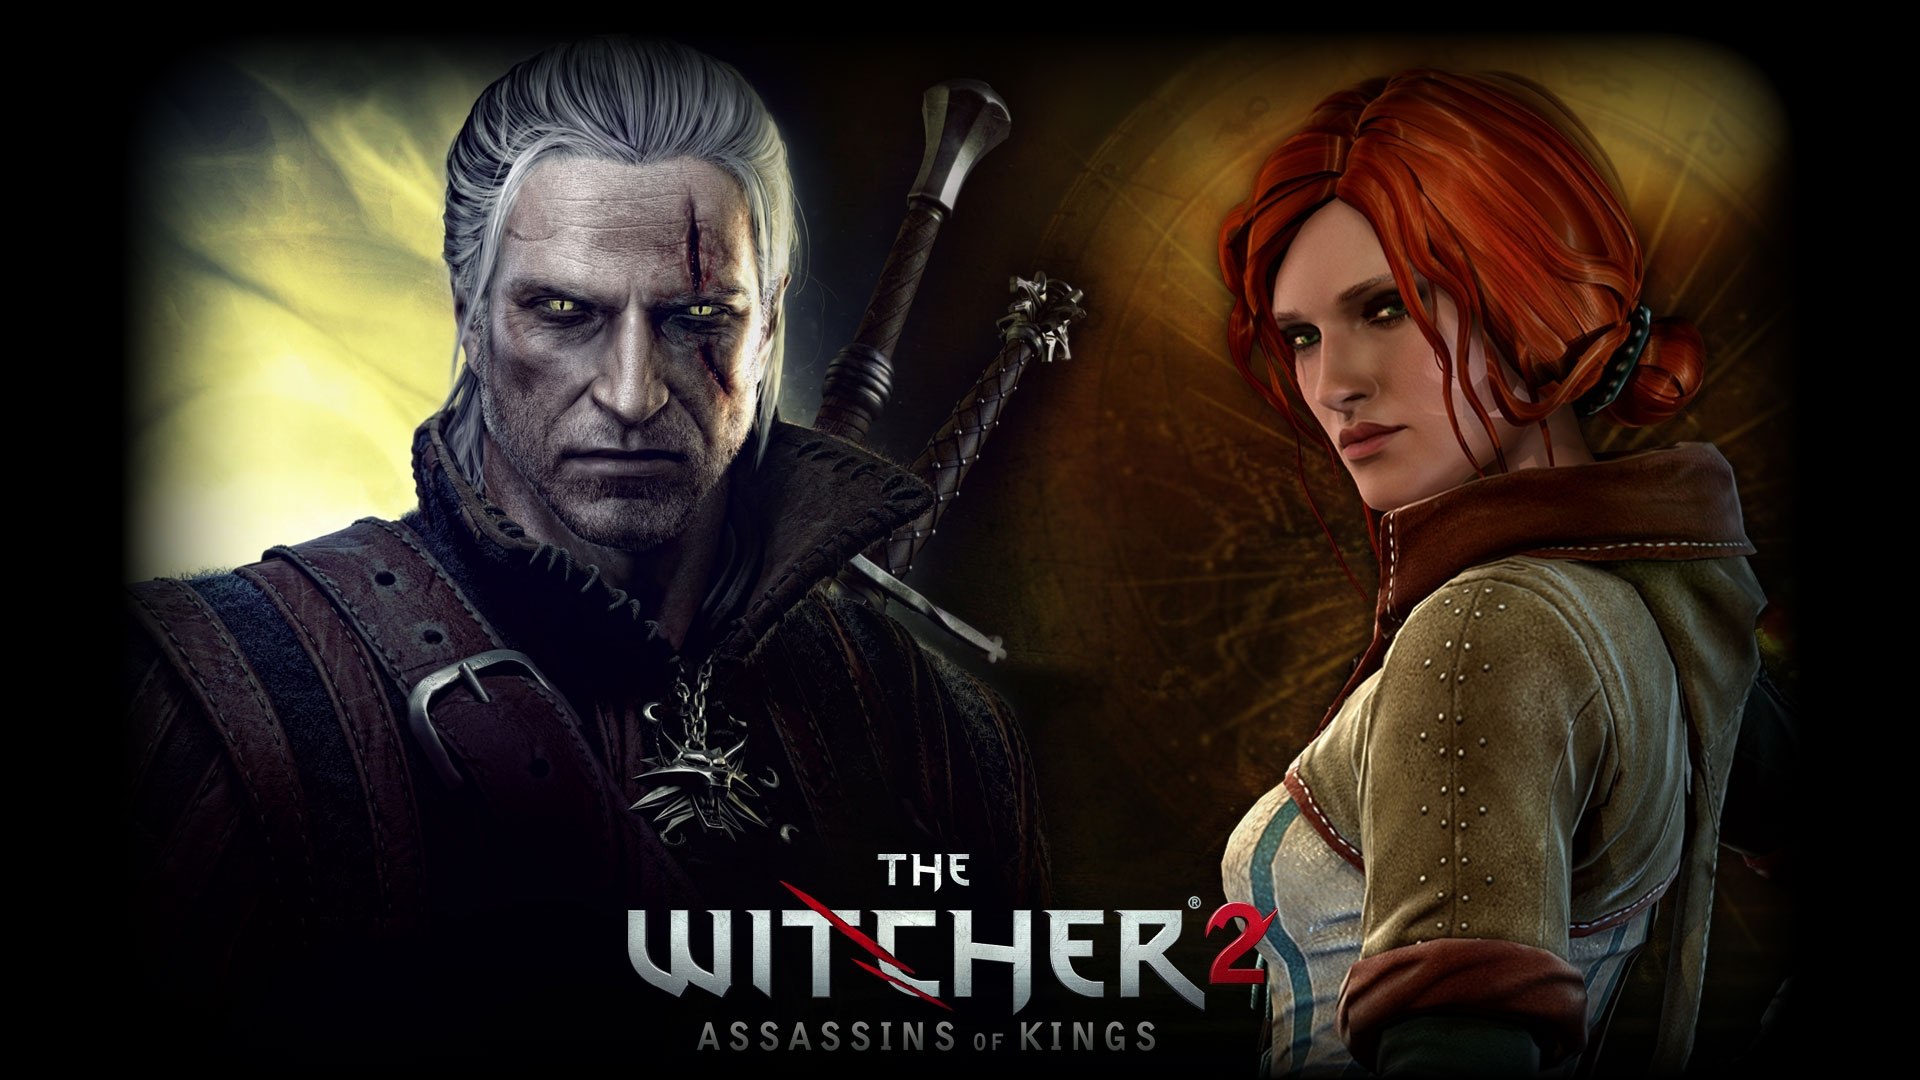 The Witcher 2 Assassins Of Kings HD Wallpapers and Background 1920x1080